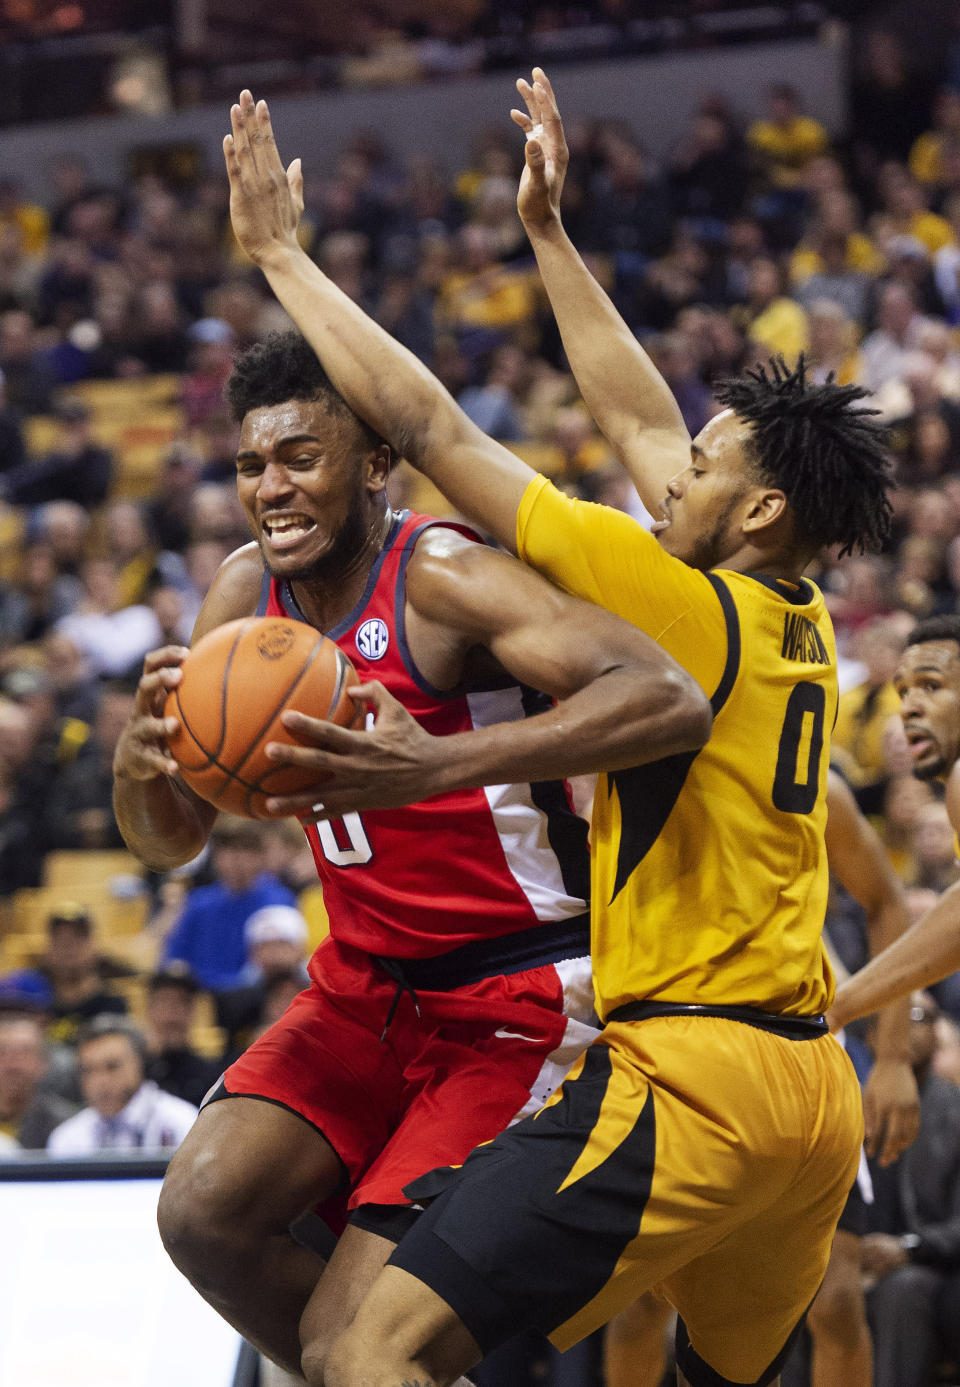 Mississippi's Blake Hinson, left, pushes his way past Missouri's Torrence Watson, right, during the first half of an NCAA college basketball game Saturday, March 9, 2019, in Columbia, Mo. (AP Photo/L.G. Patterson)